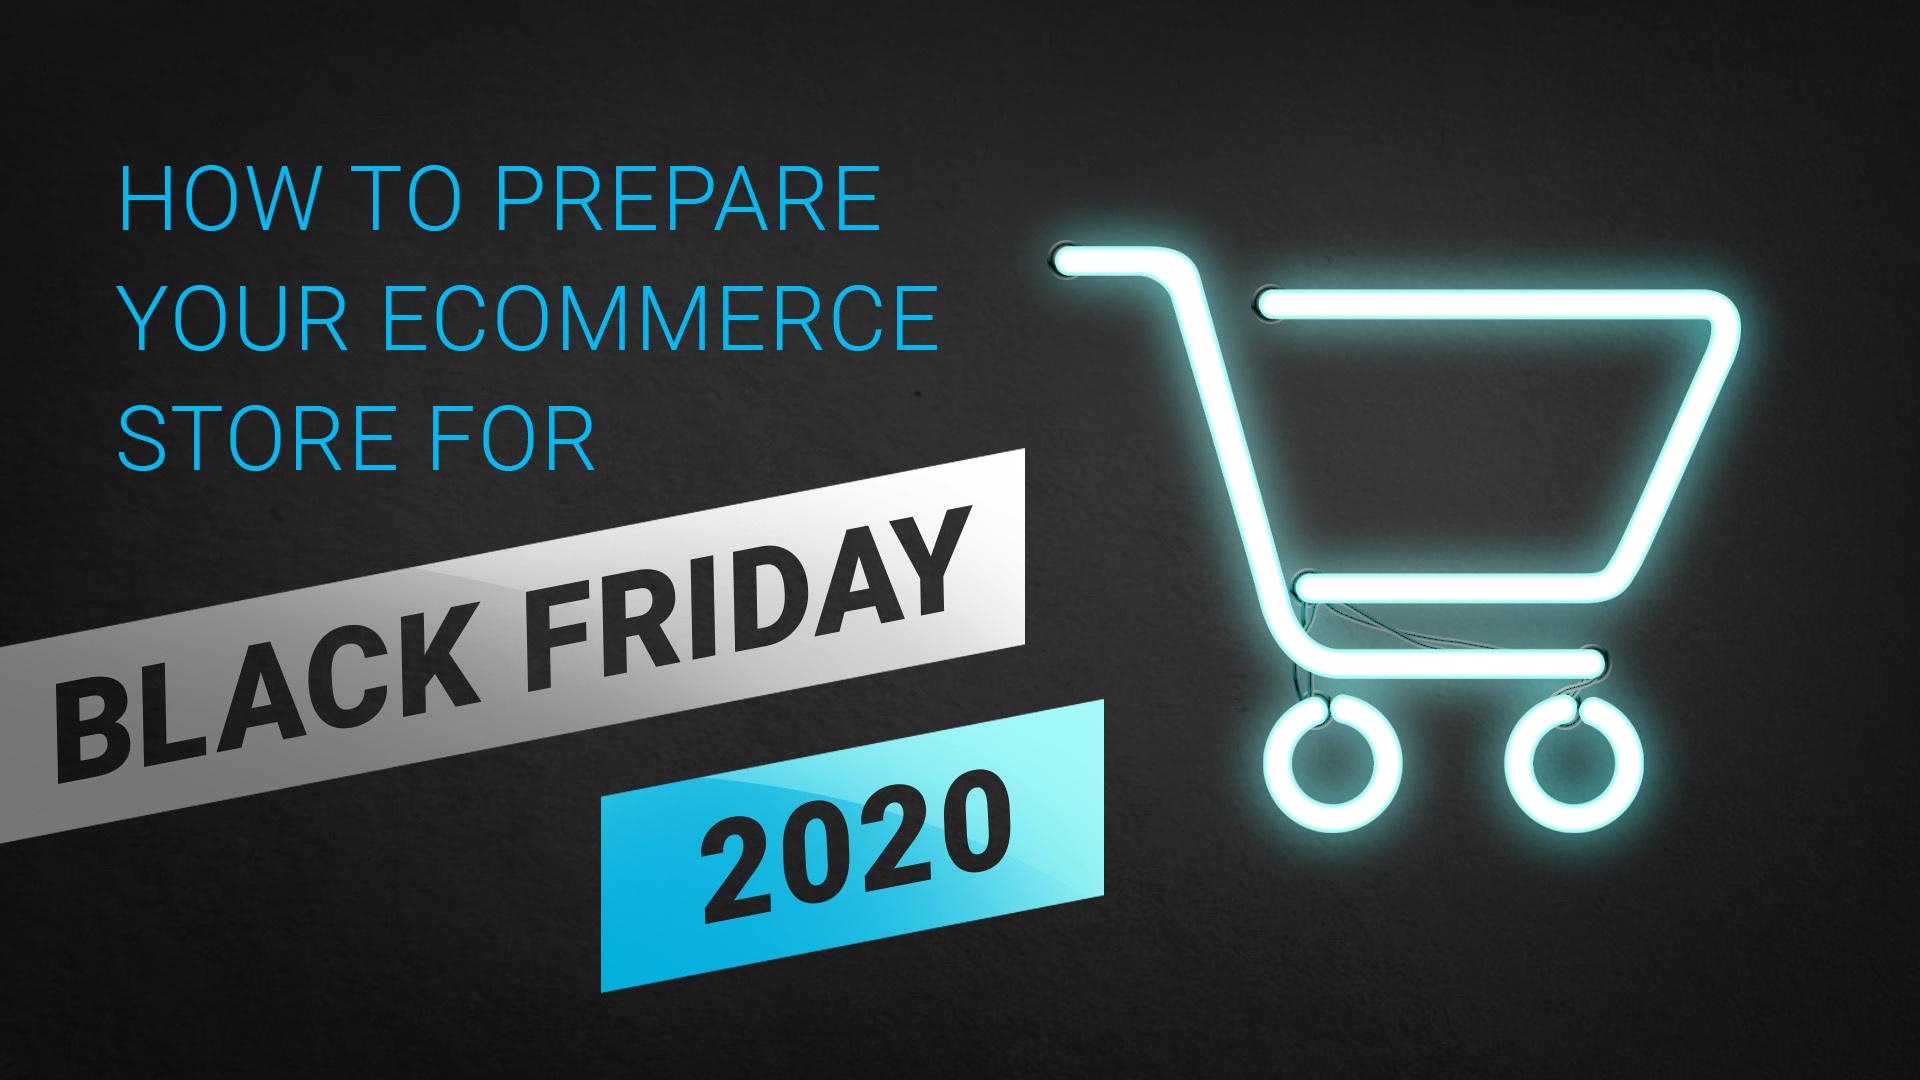 Black Friday Ecommerce Shopify Web Development